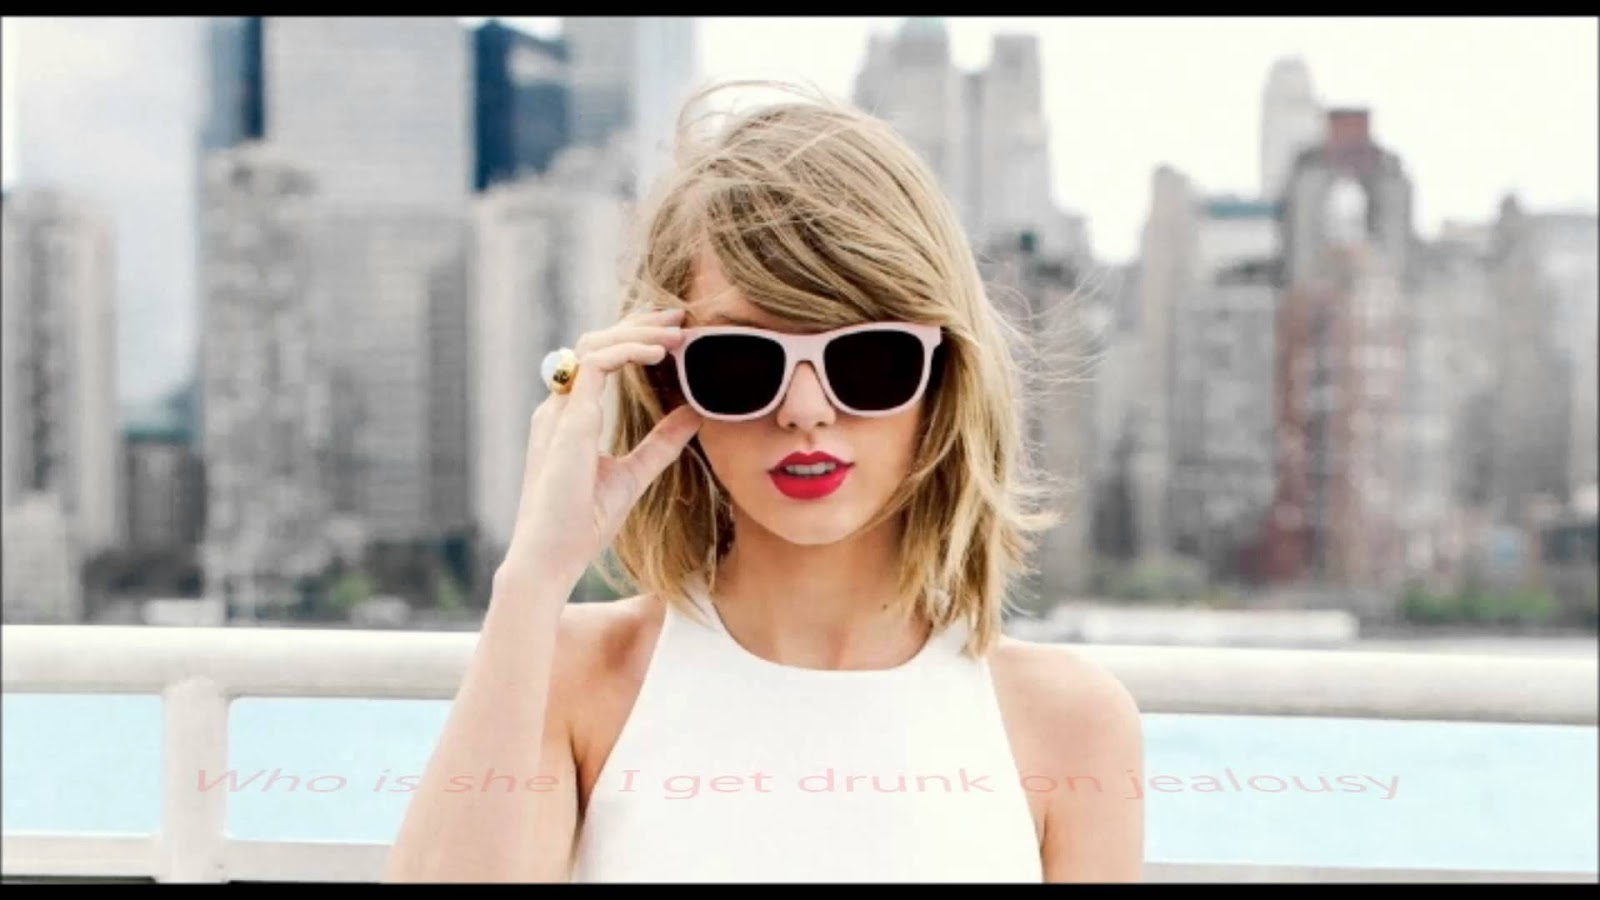 Got A Long List Of Ex Lovers Theyll Tell You Im Insane But Ive Blank Space Baby And Ill Write Your Name